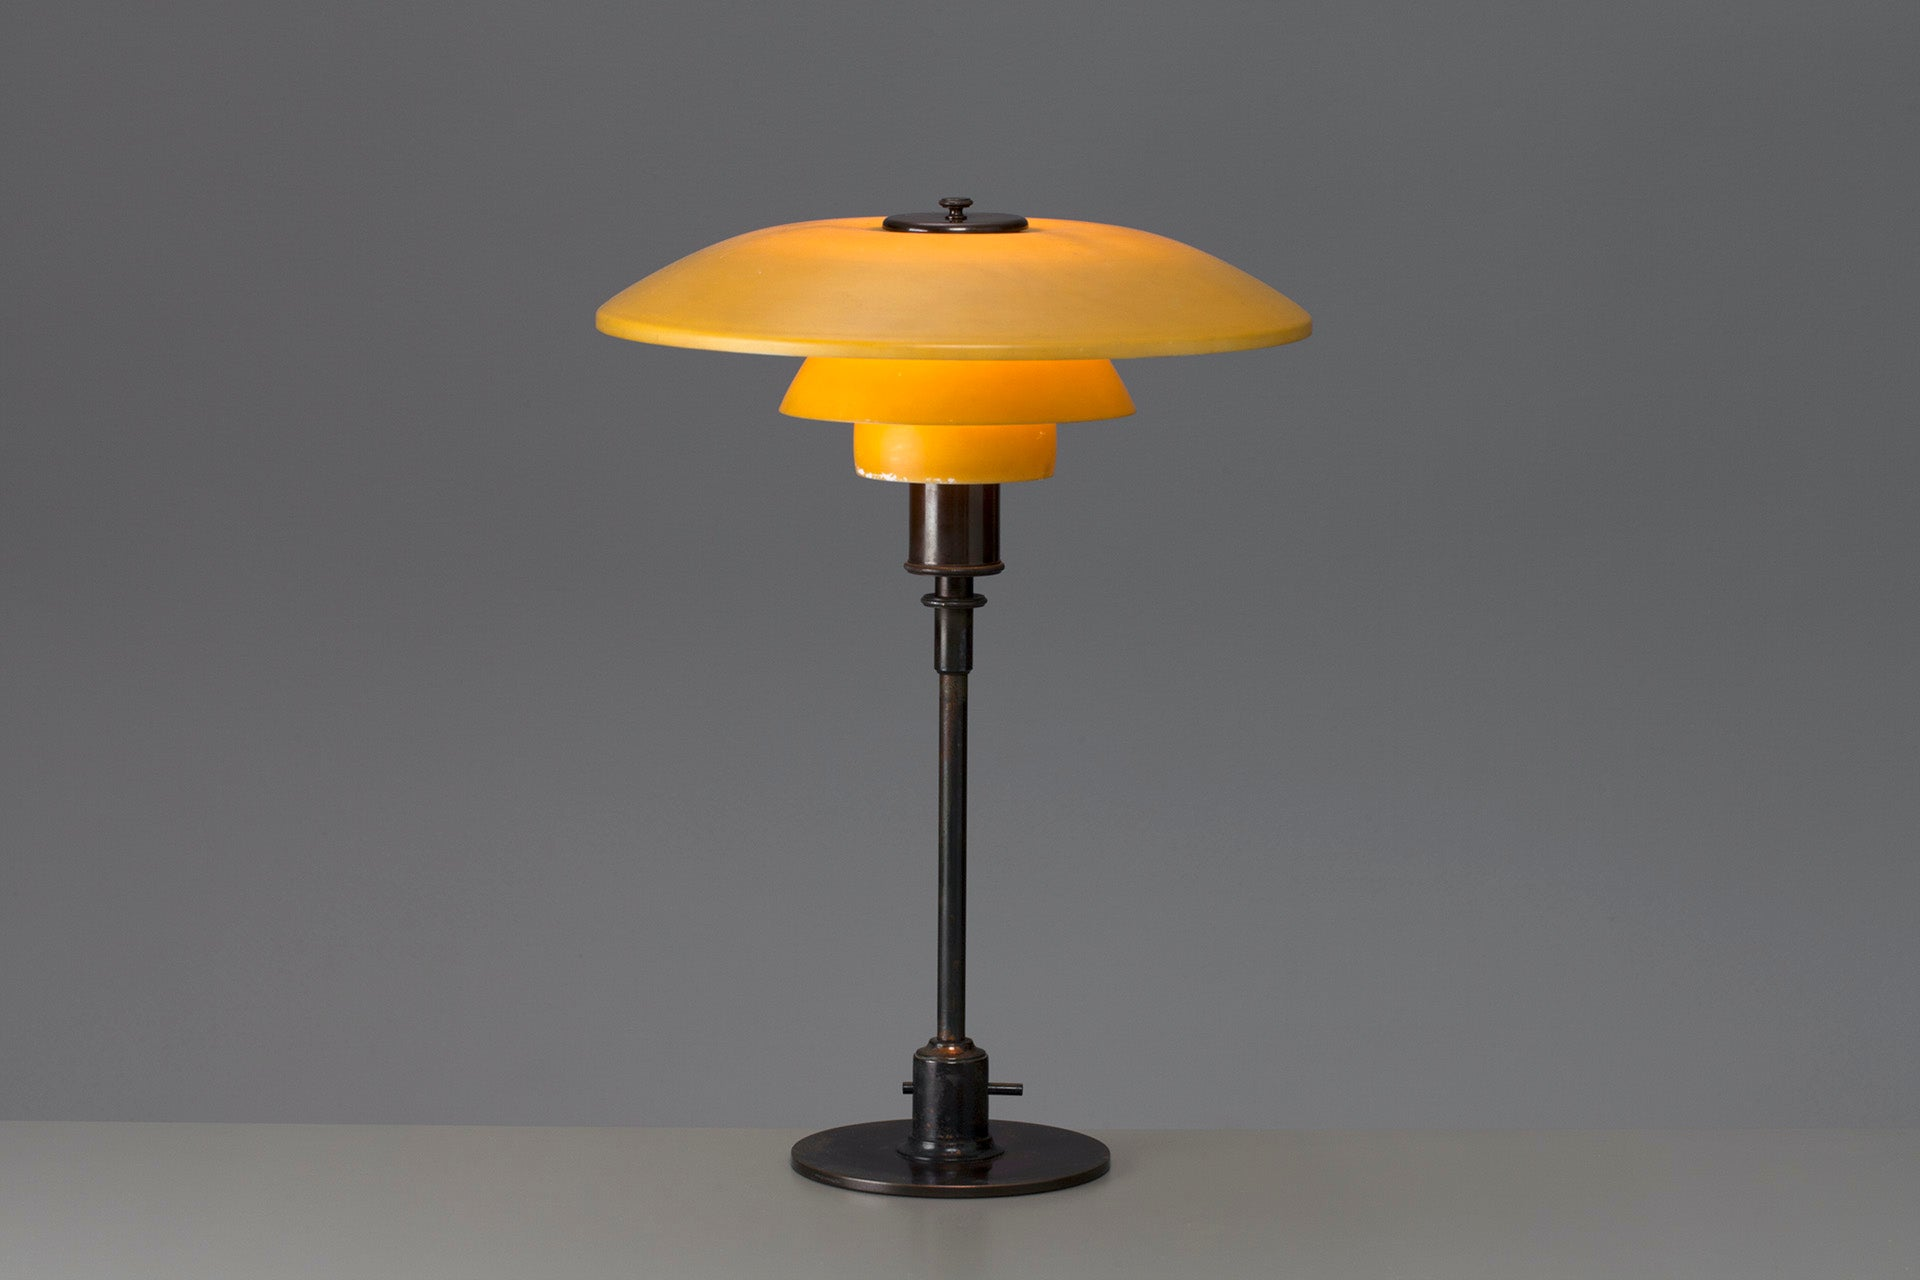 PH 4/3 Table Lamp by Poul Henningsen, 1920s. Photo © Jacksons